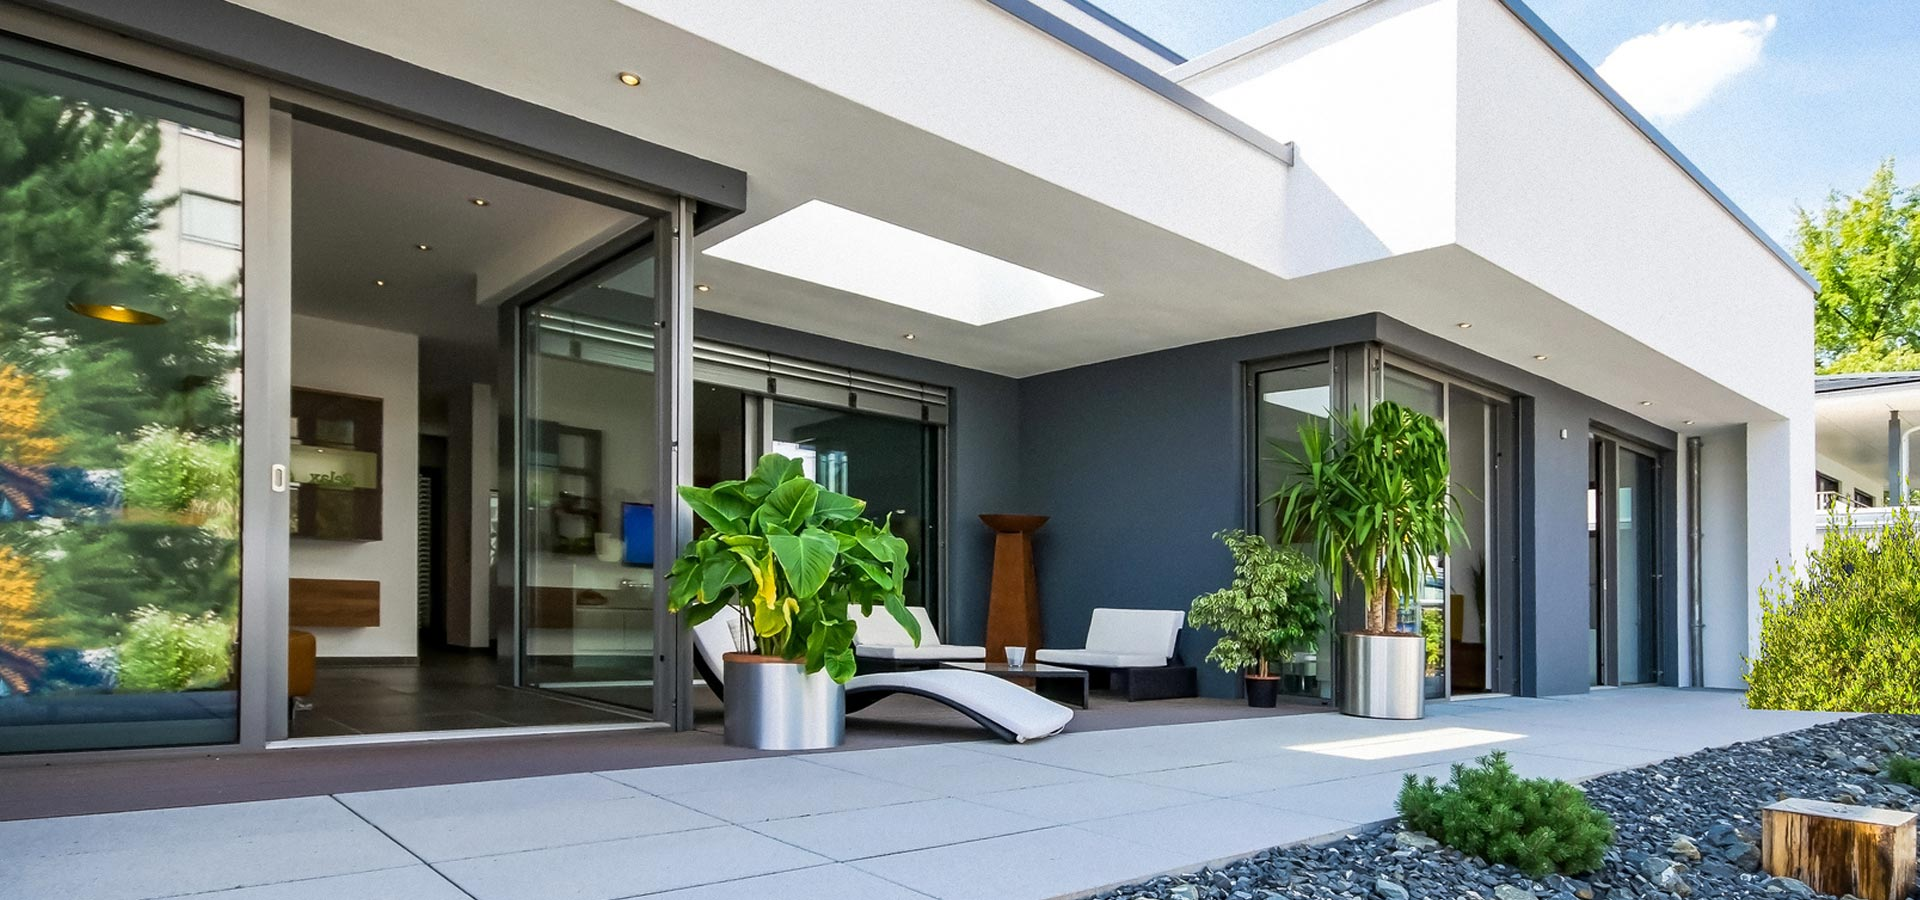 Terrace to increase the quality of living